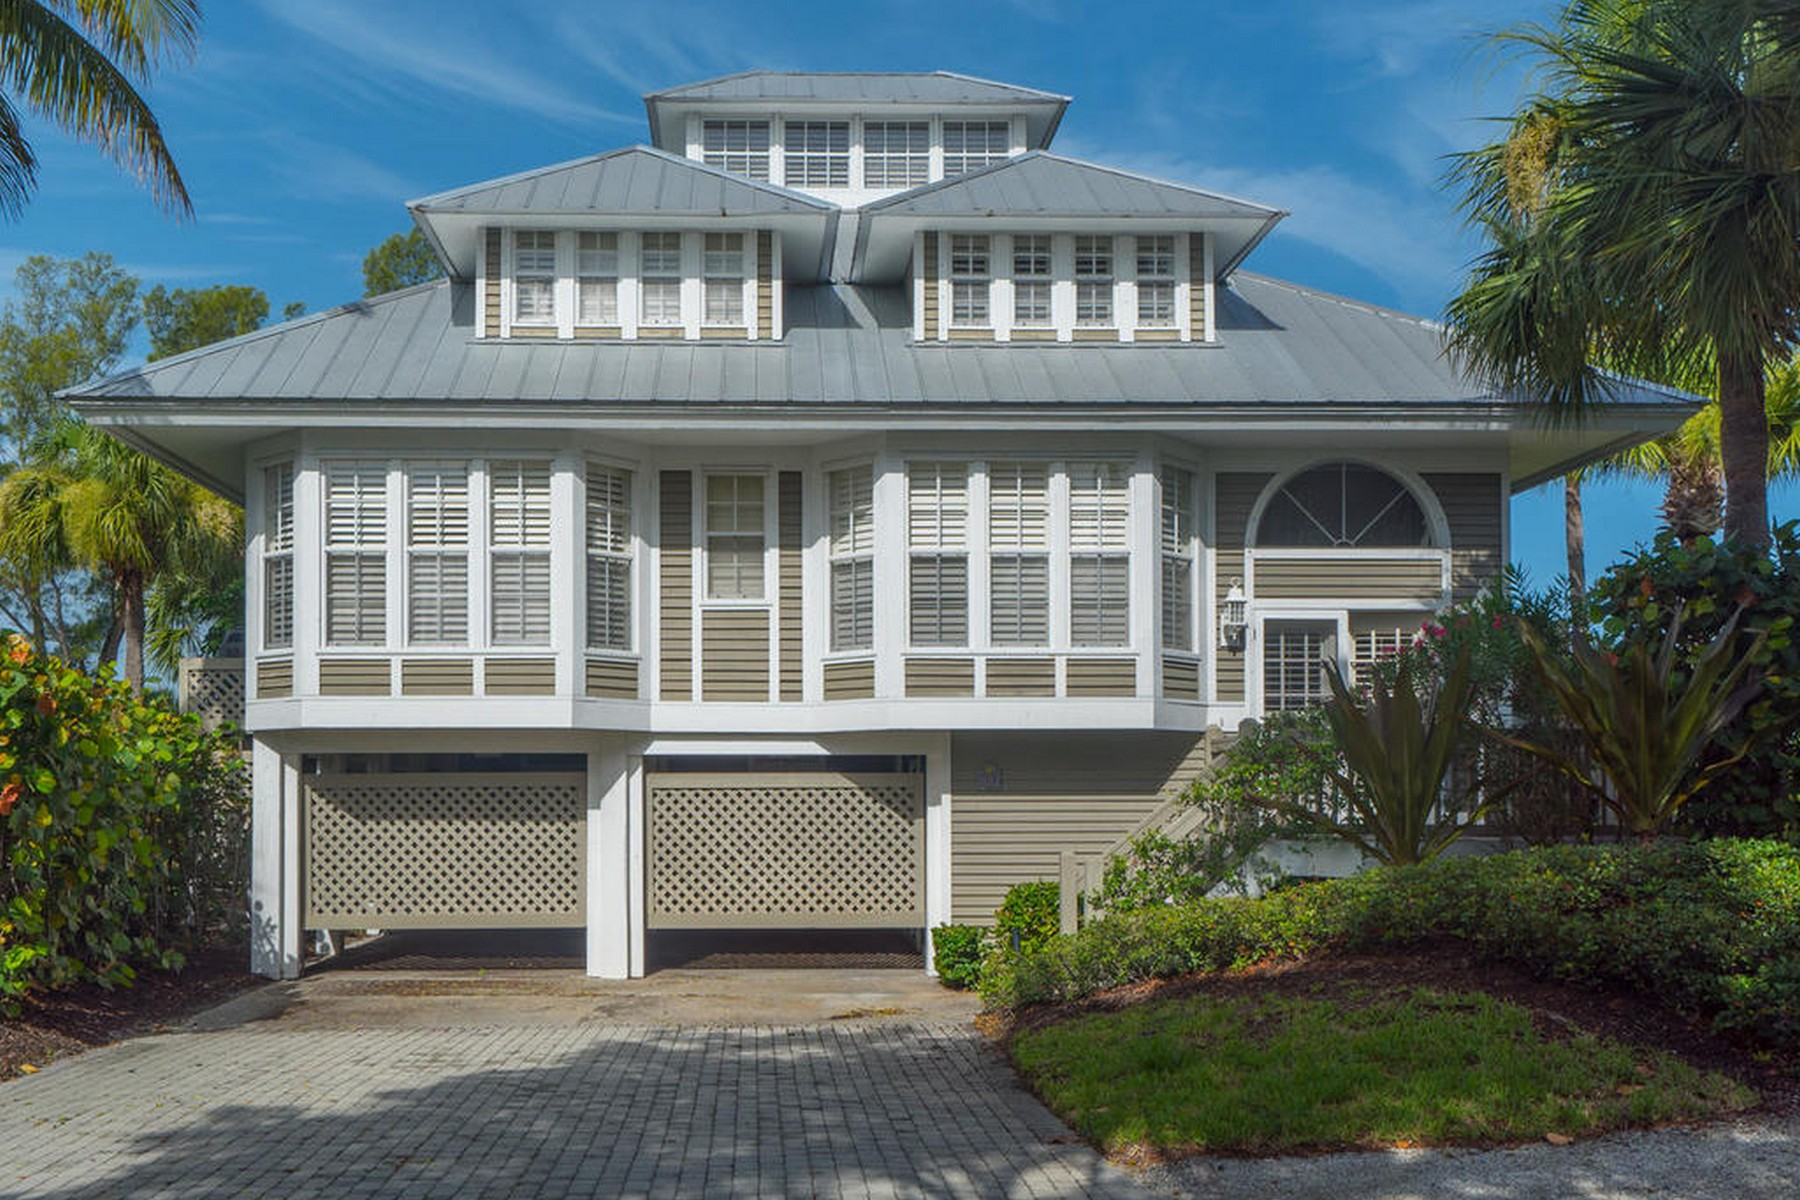 Single Family Home for Rent at Seawatch #10 10 Seawatch Drive Seawatch #10, Boca Grande, Florida, 33921 United States